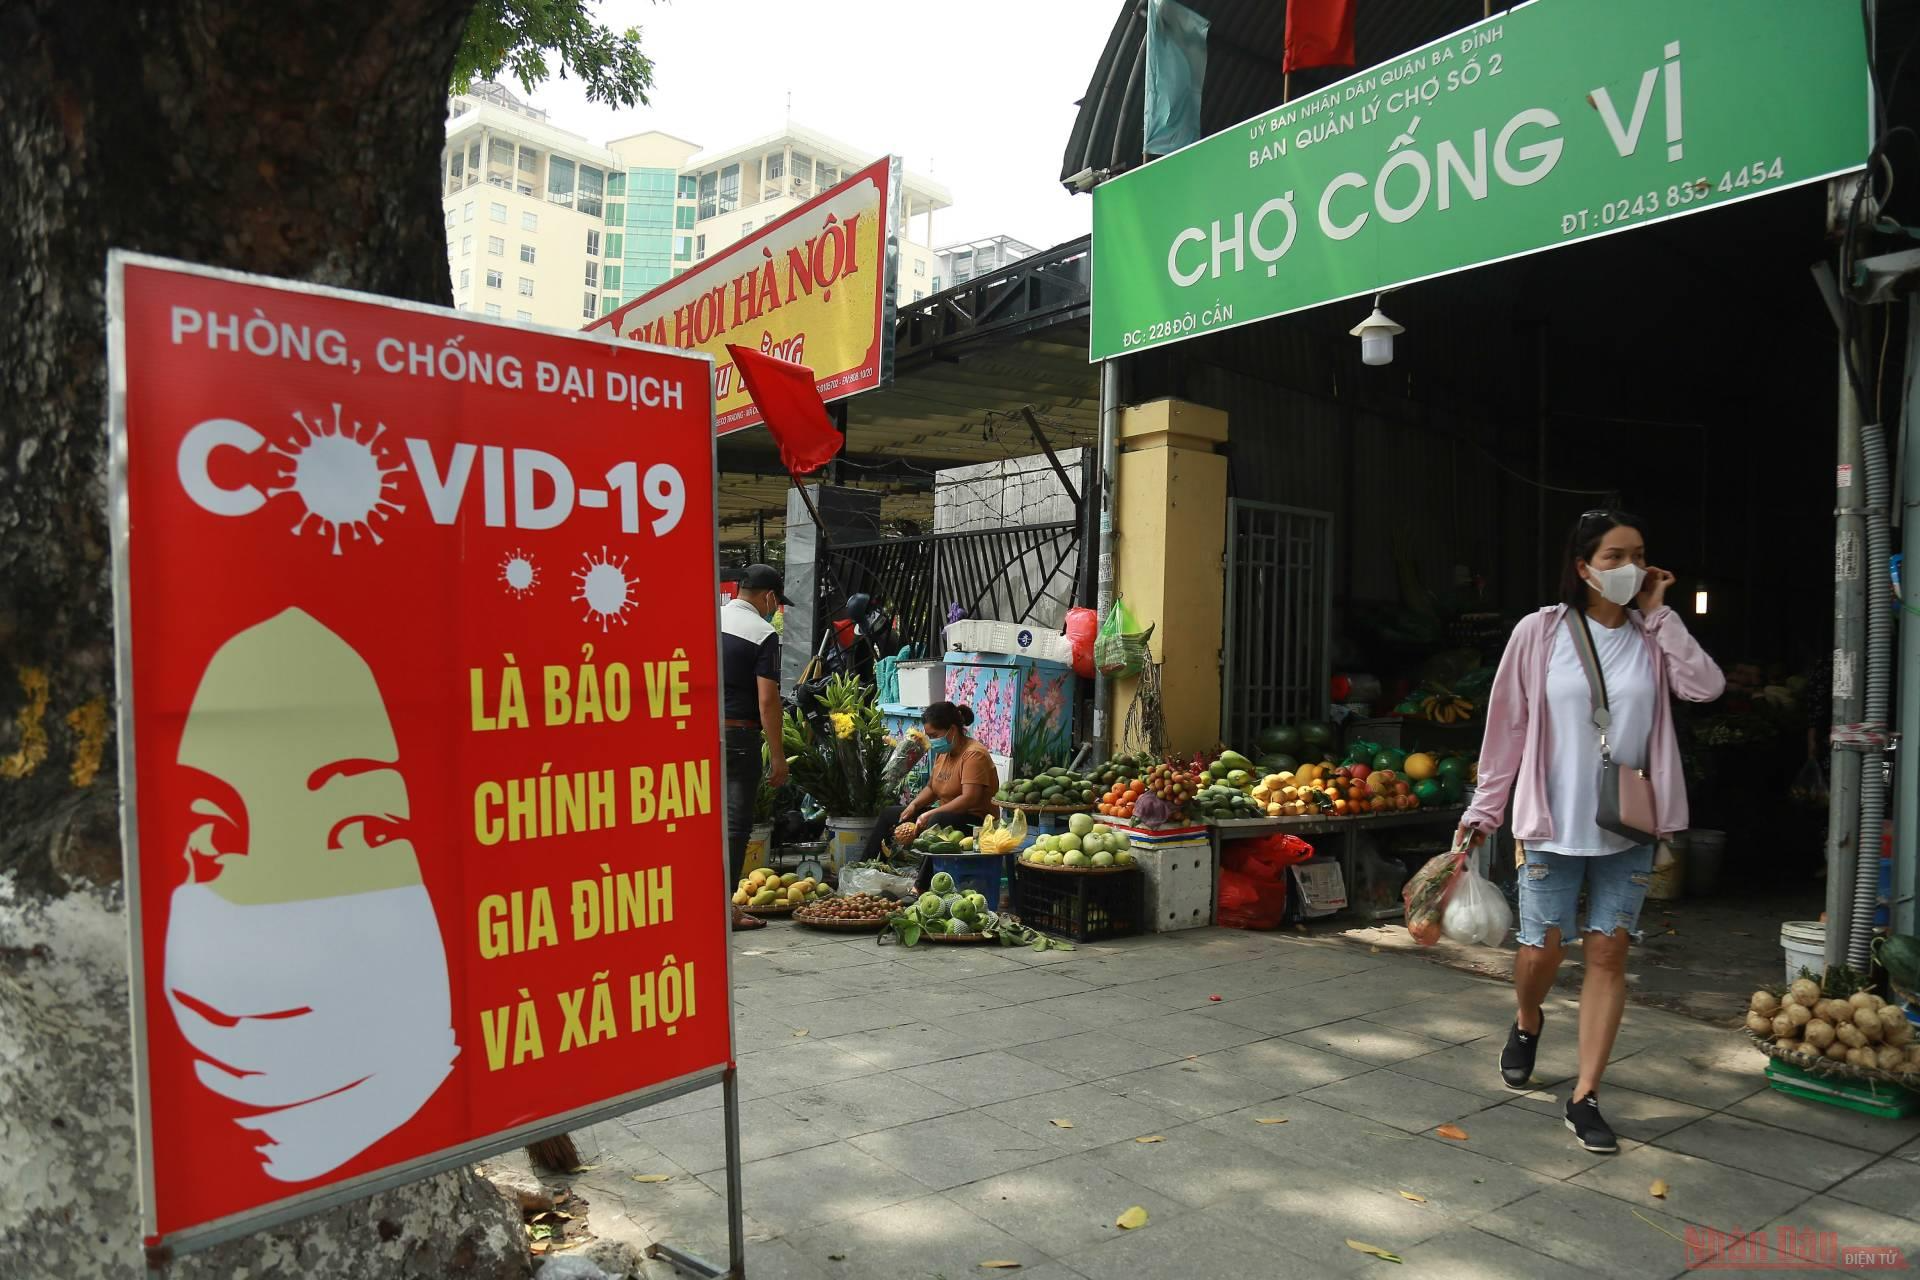 In photo: Shopping in Covid-19 - Put money in bucket, goods in pot